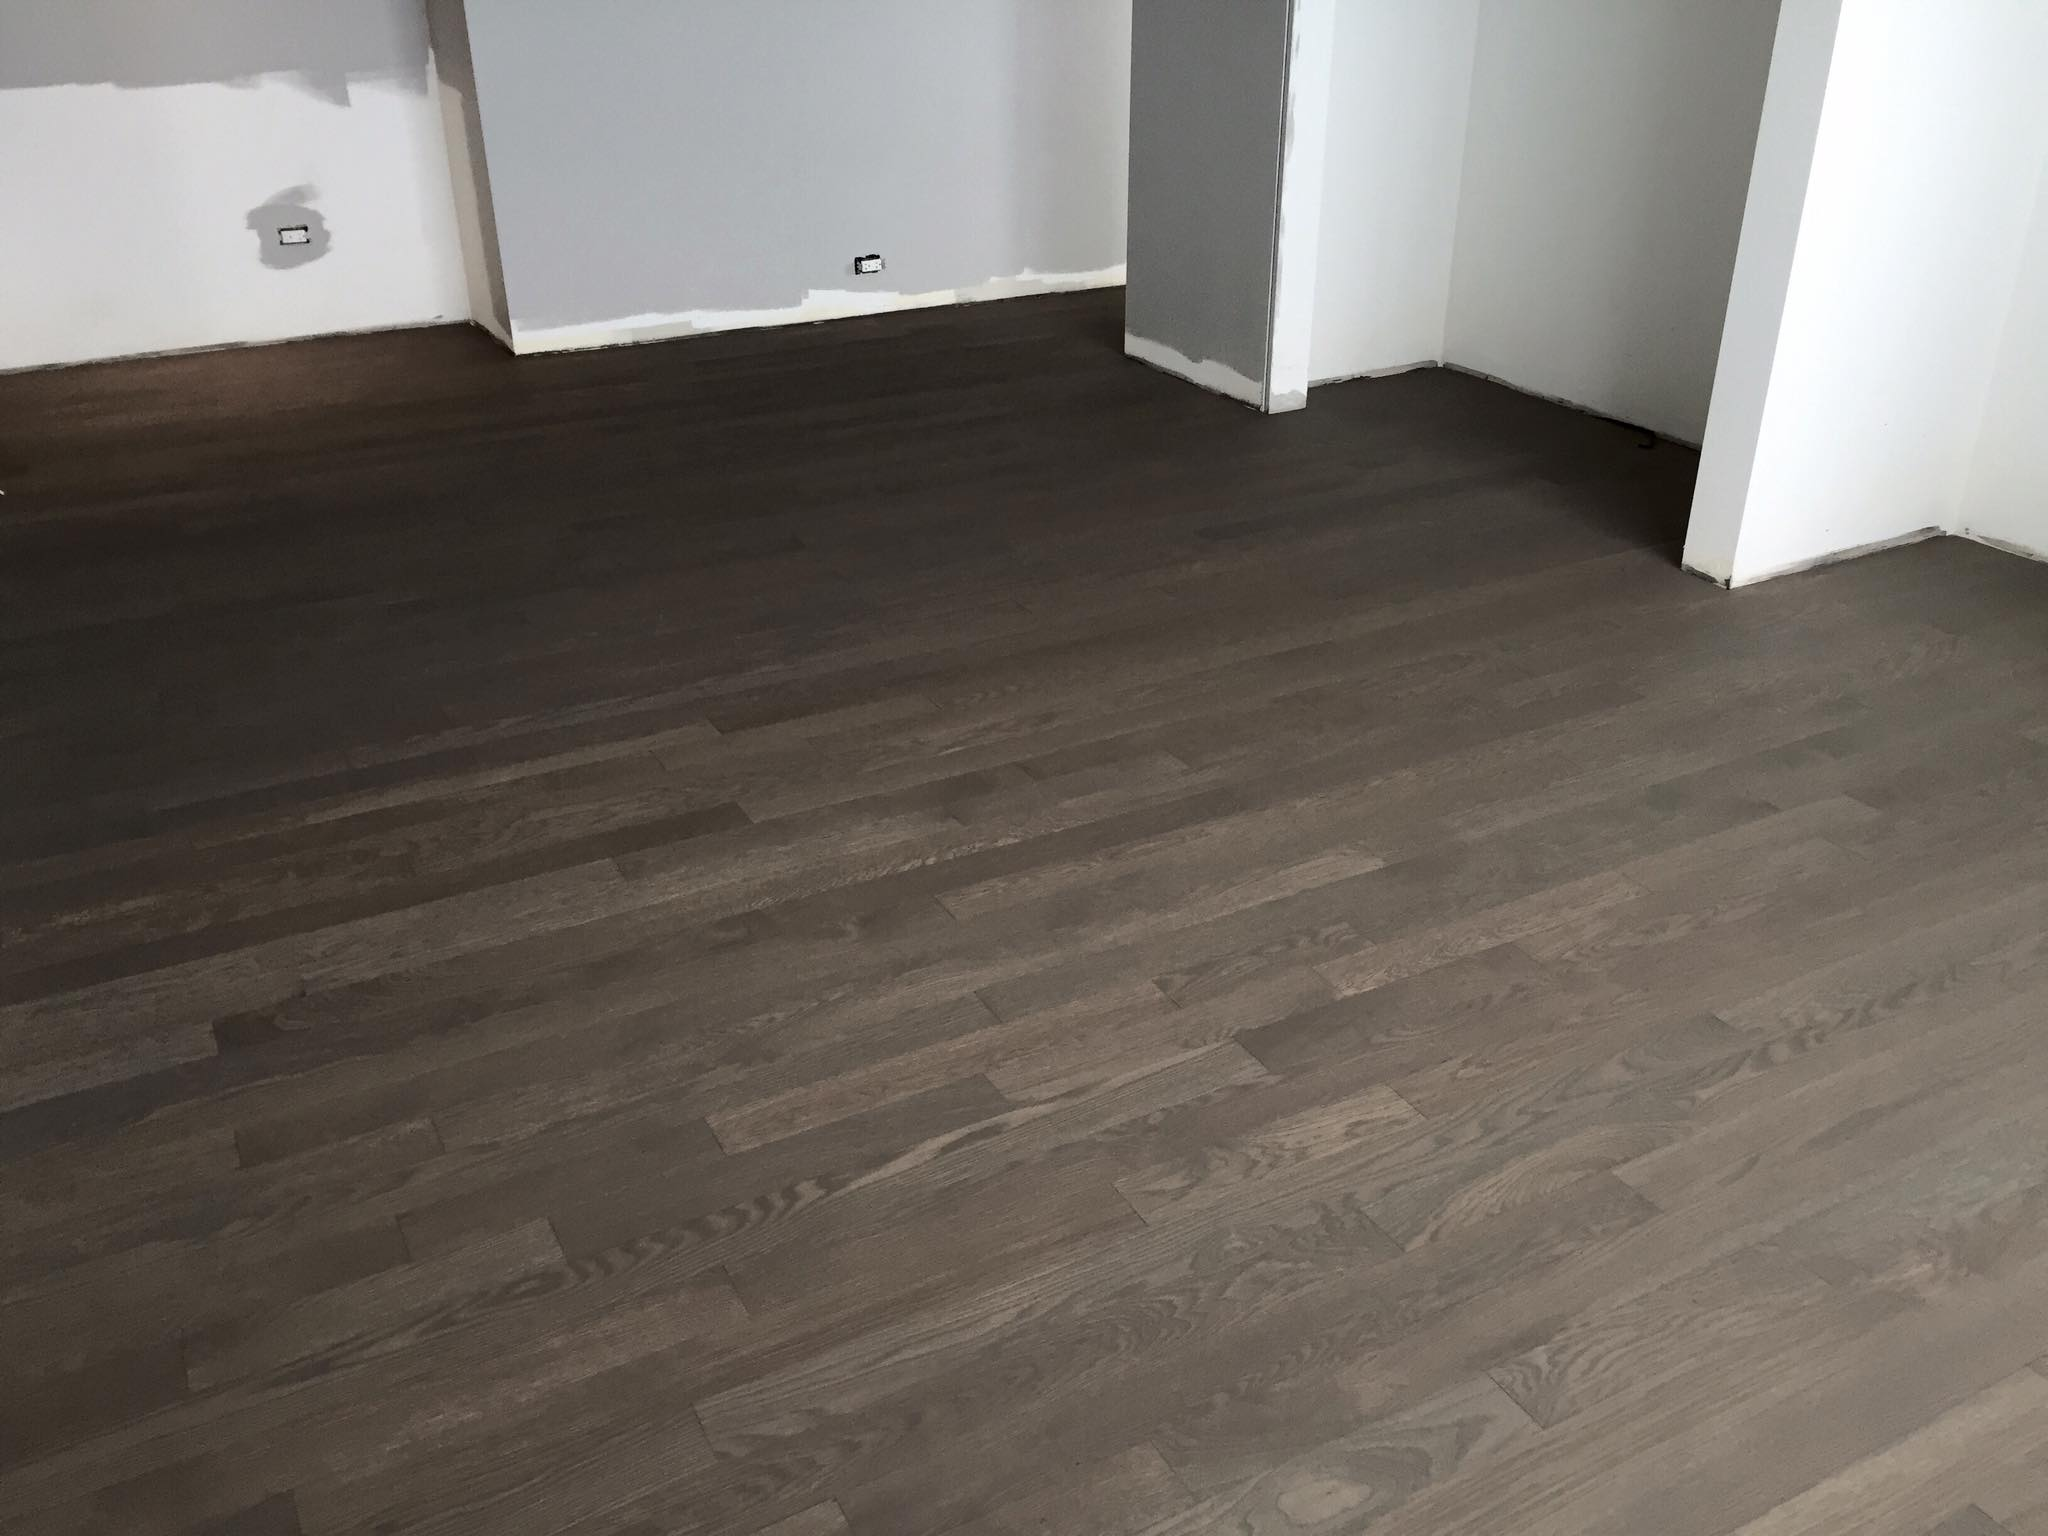 Chicago Hardwood Floor Rubio Monocoat  Install  Sanding White Oak  Tom  Peter Flooring